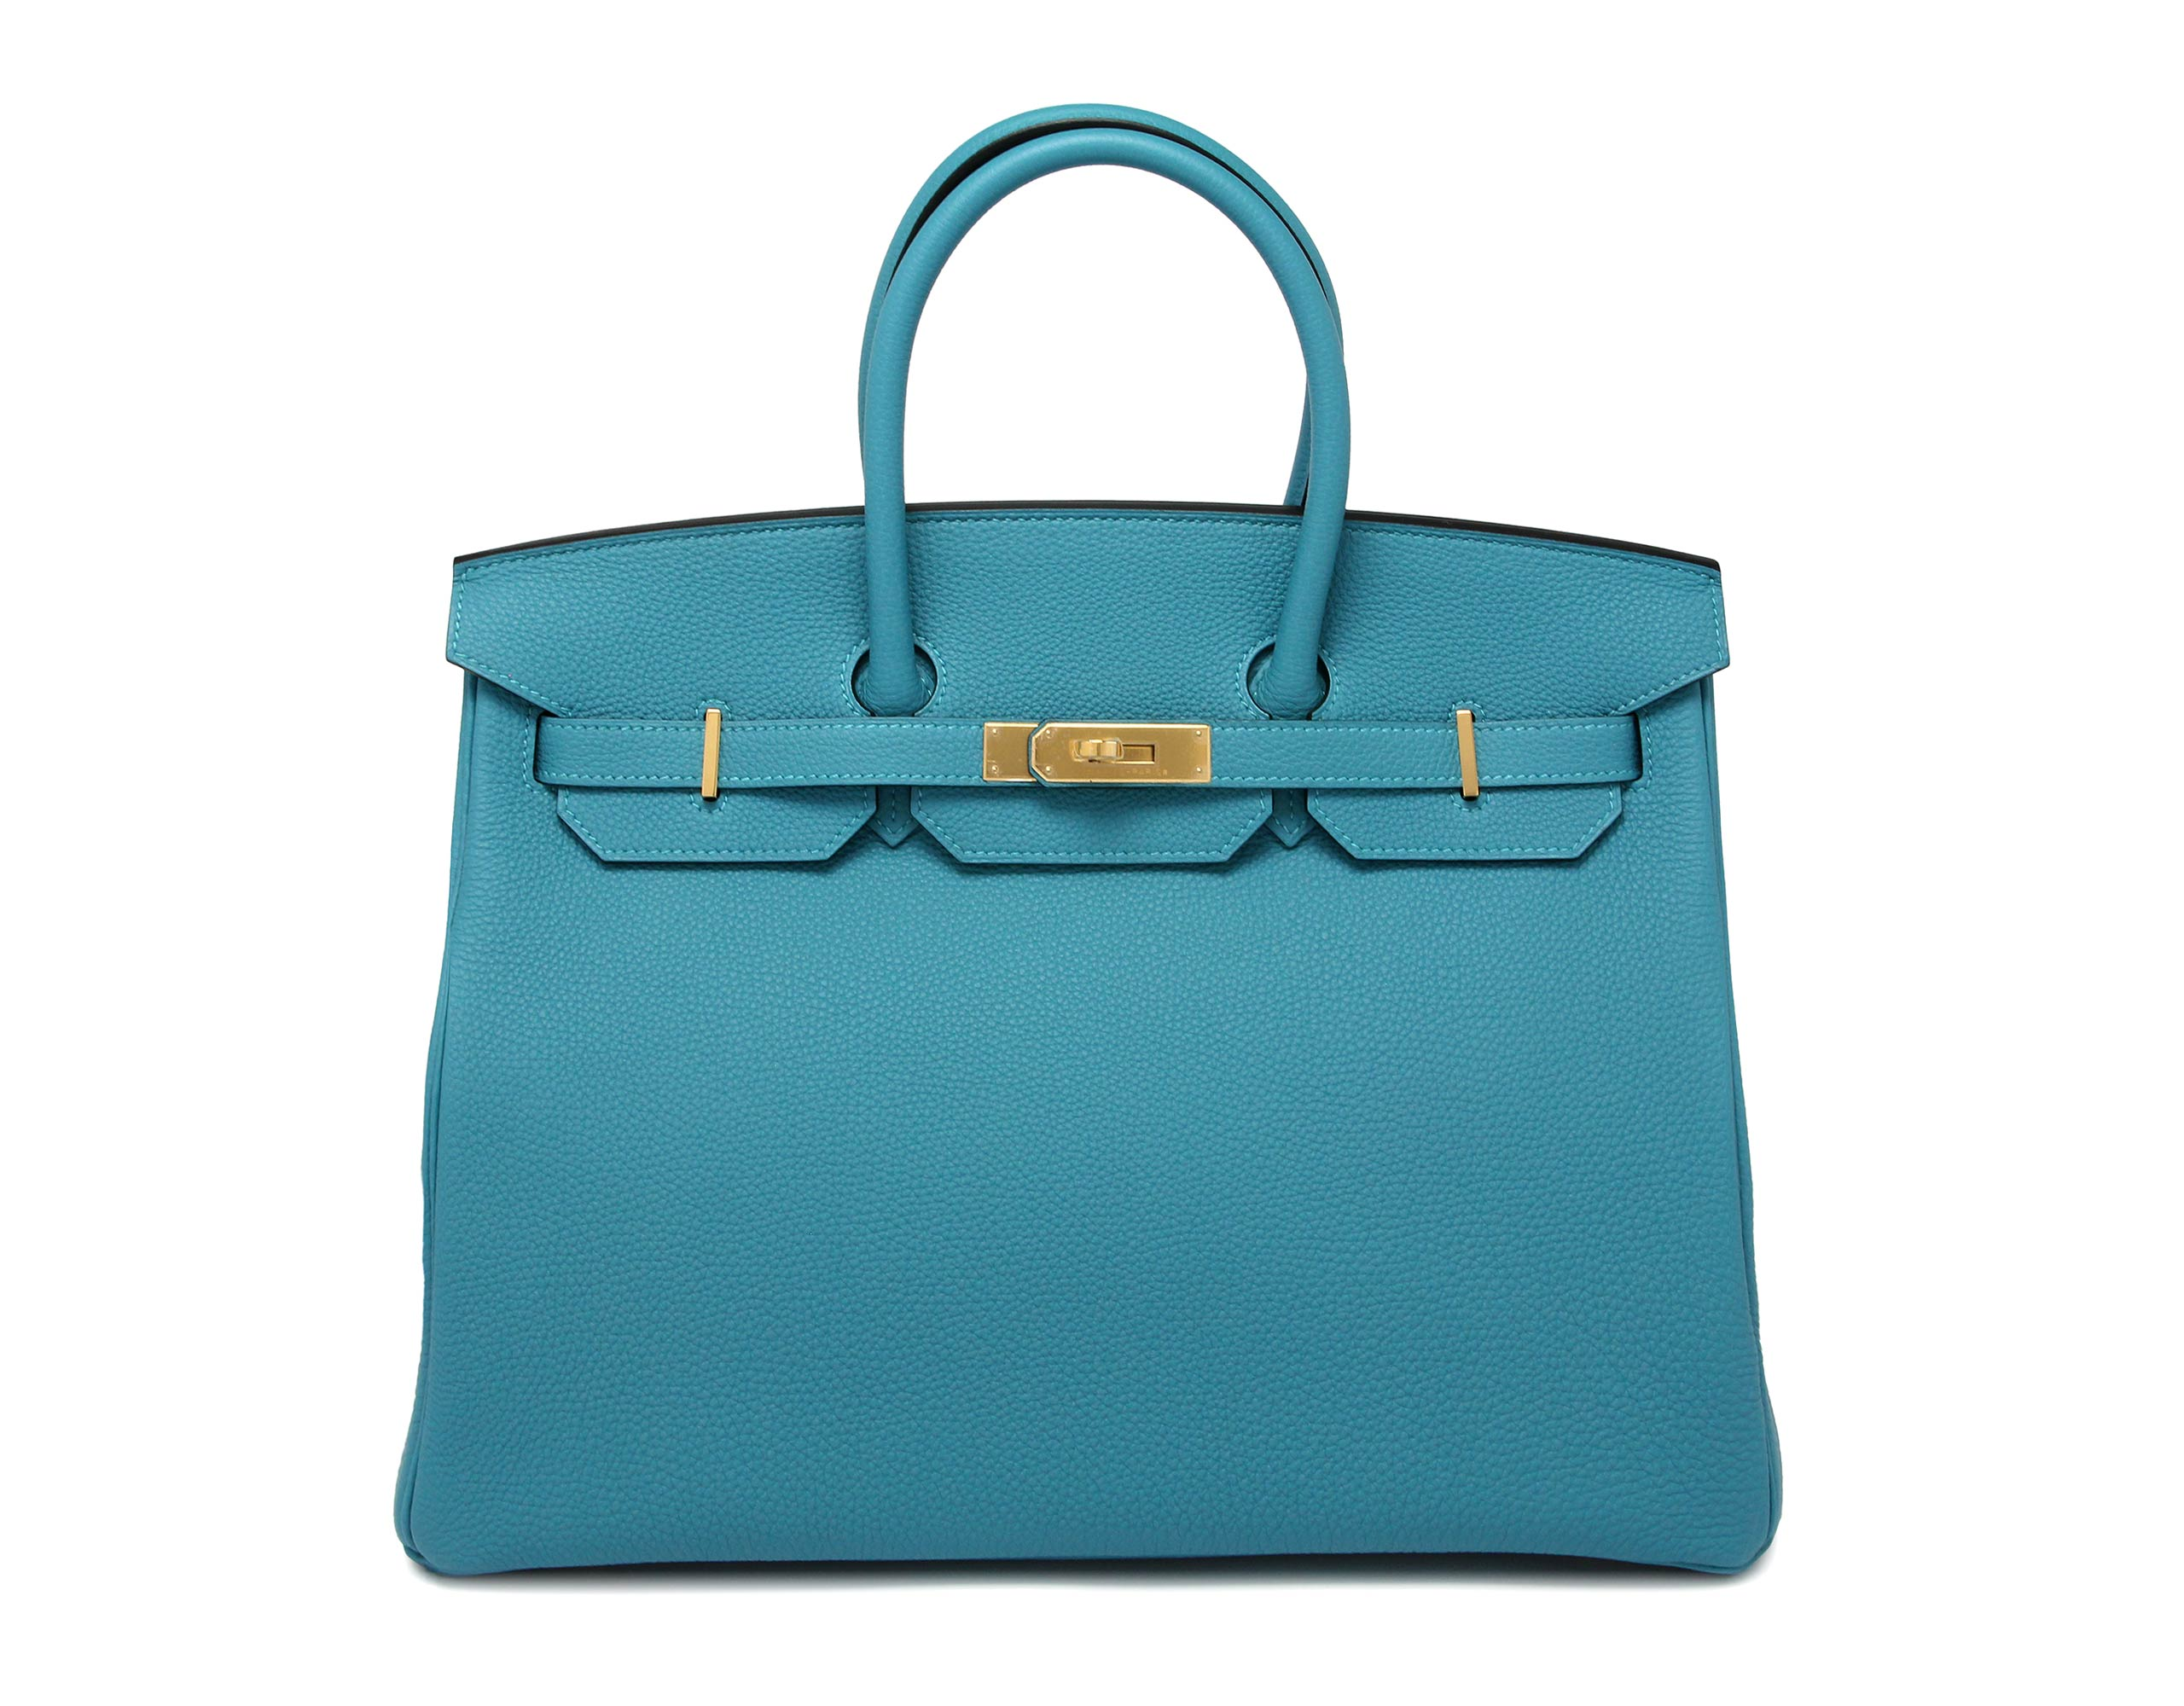 Hermes Birkin Turquoise Togo with Gold